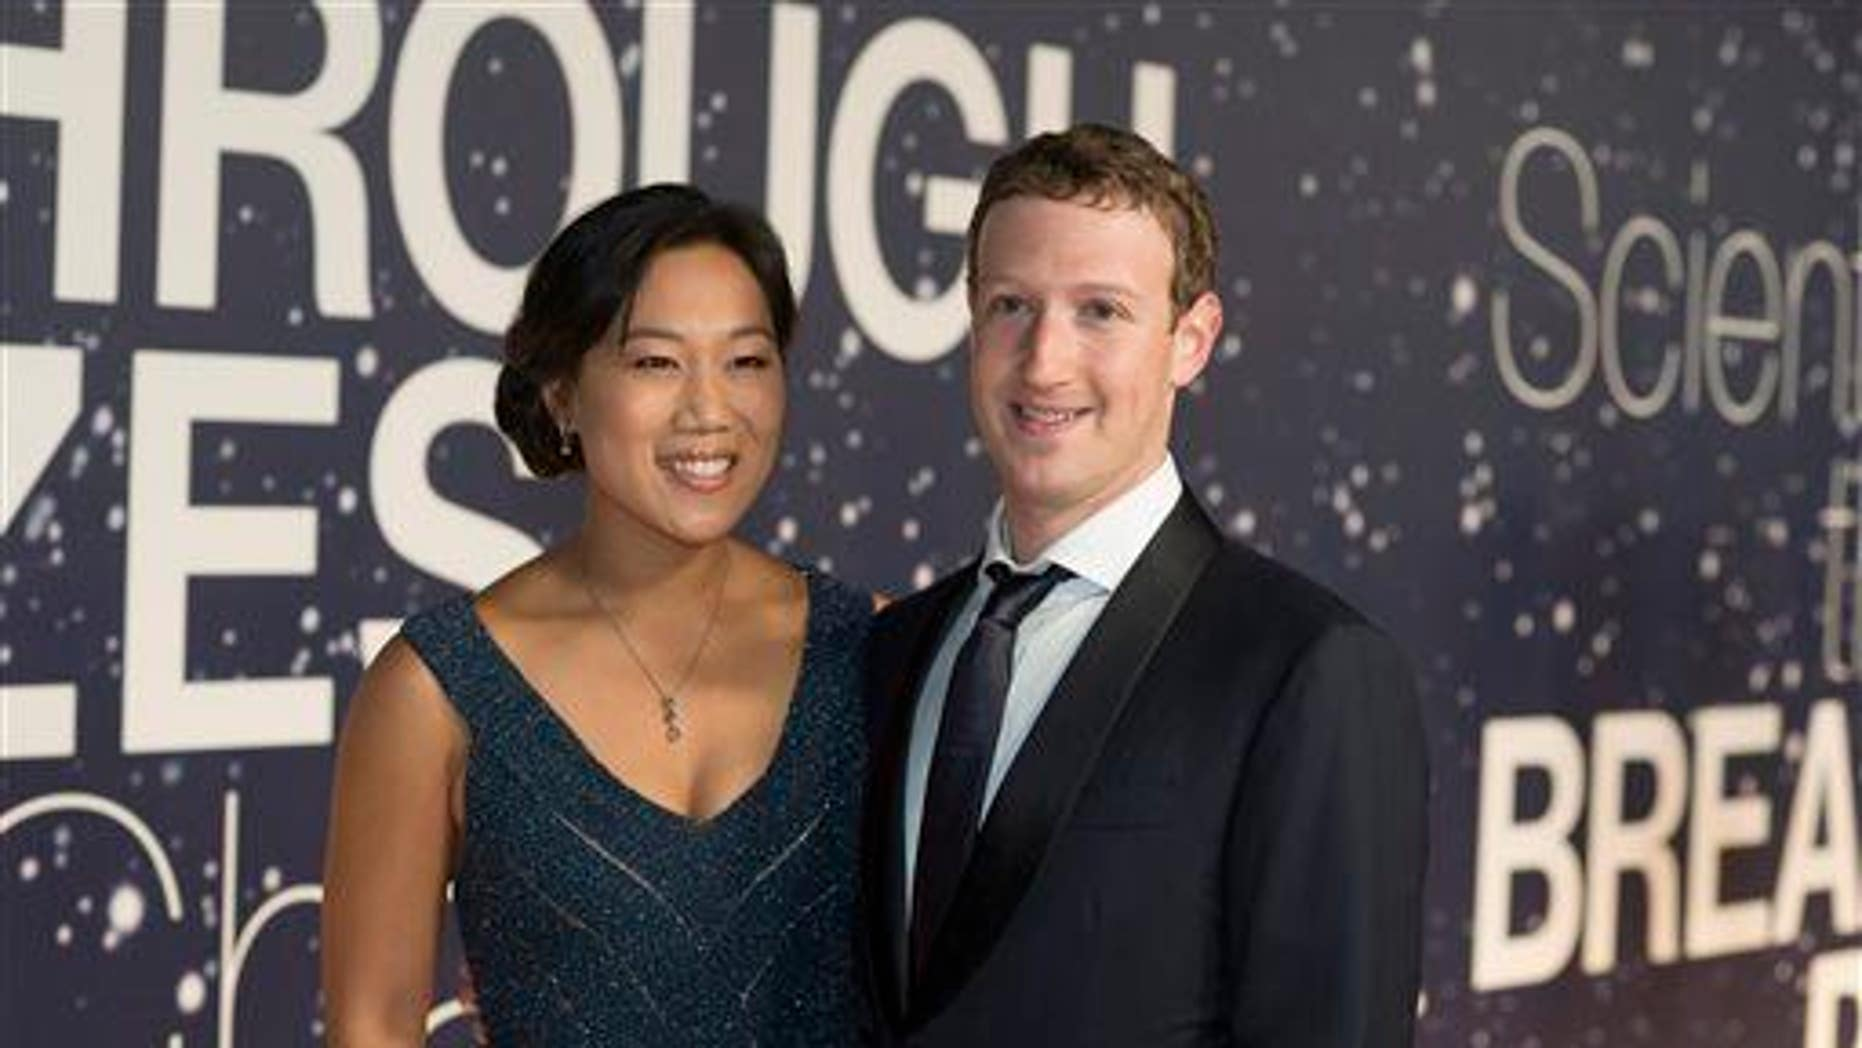 Priscilla Chan and Mark Zuckerberg arrive at the 2nd Annual Breakthrough Prize Award Ceremony at the NASA Ames Research Center on Nov. 9, 2014, in Mountain View, California.